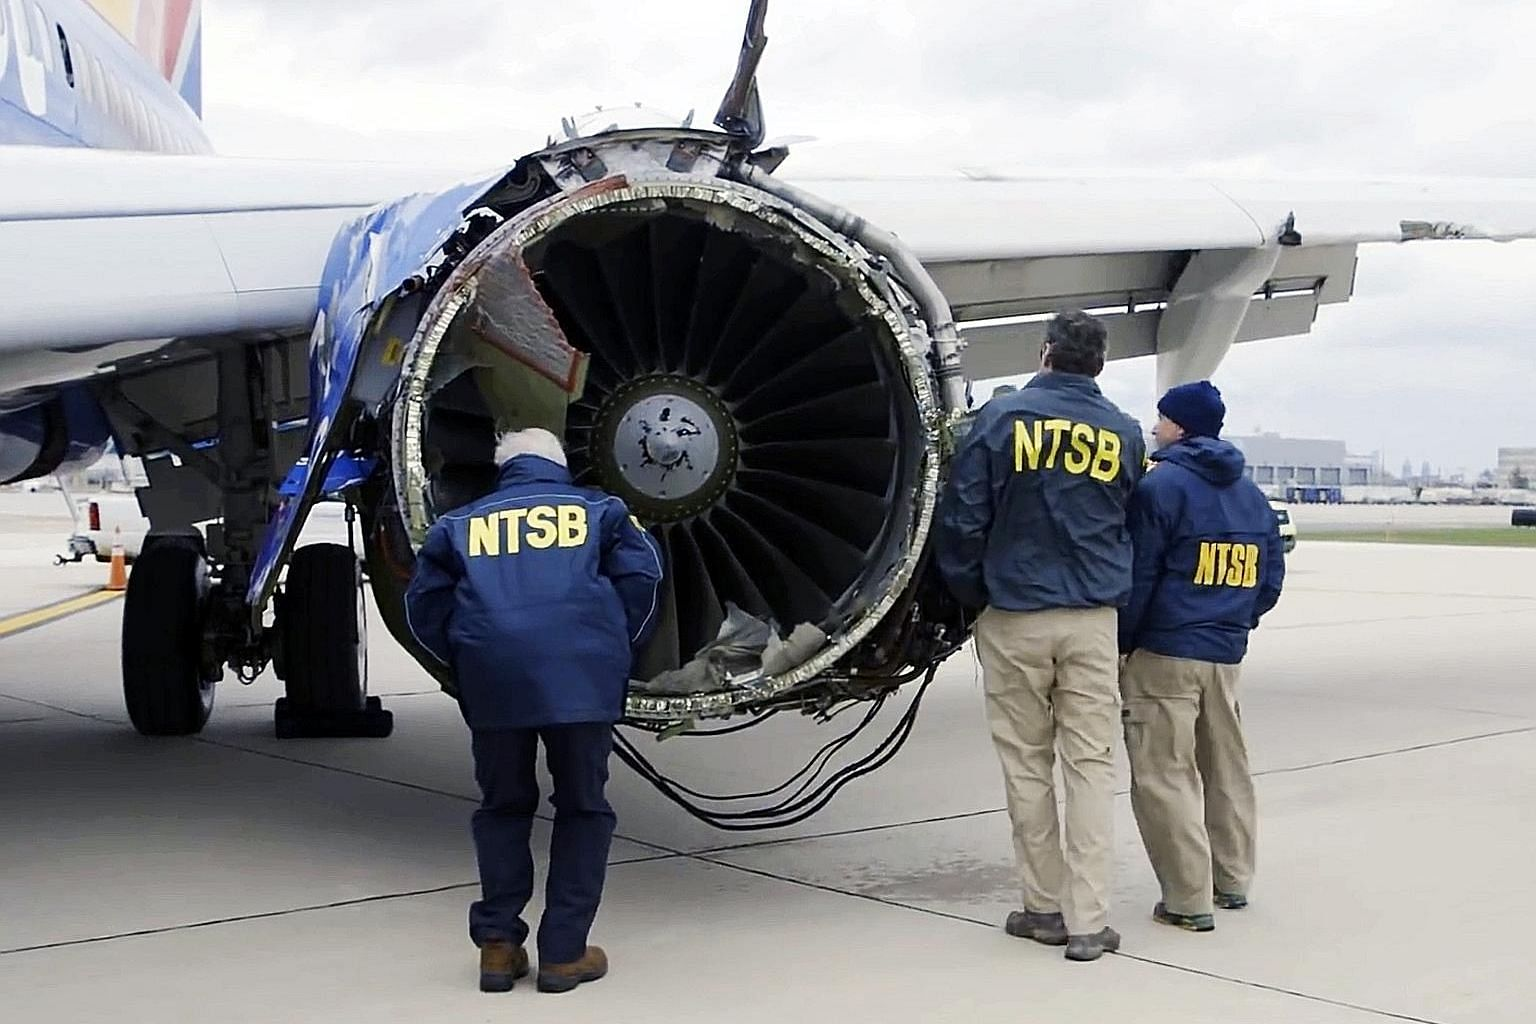 Investigators examining the damaged engine of the Southwest Airlines plane involved in last week's accident. The engine had blown apart, killing a passenger and forcing an emergency landing.